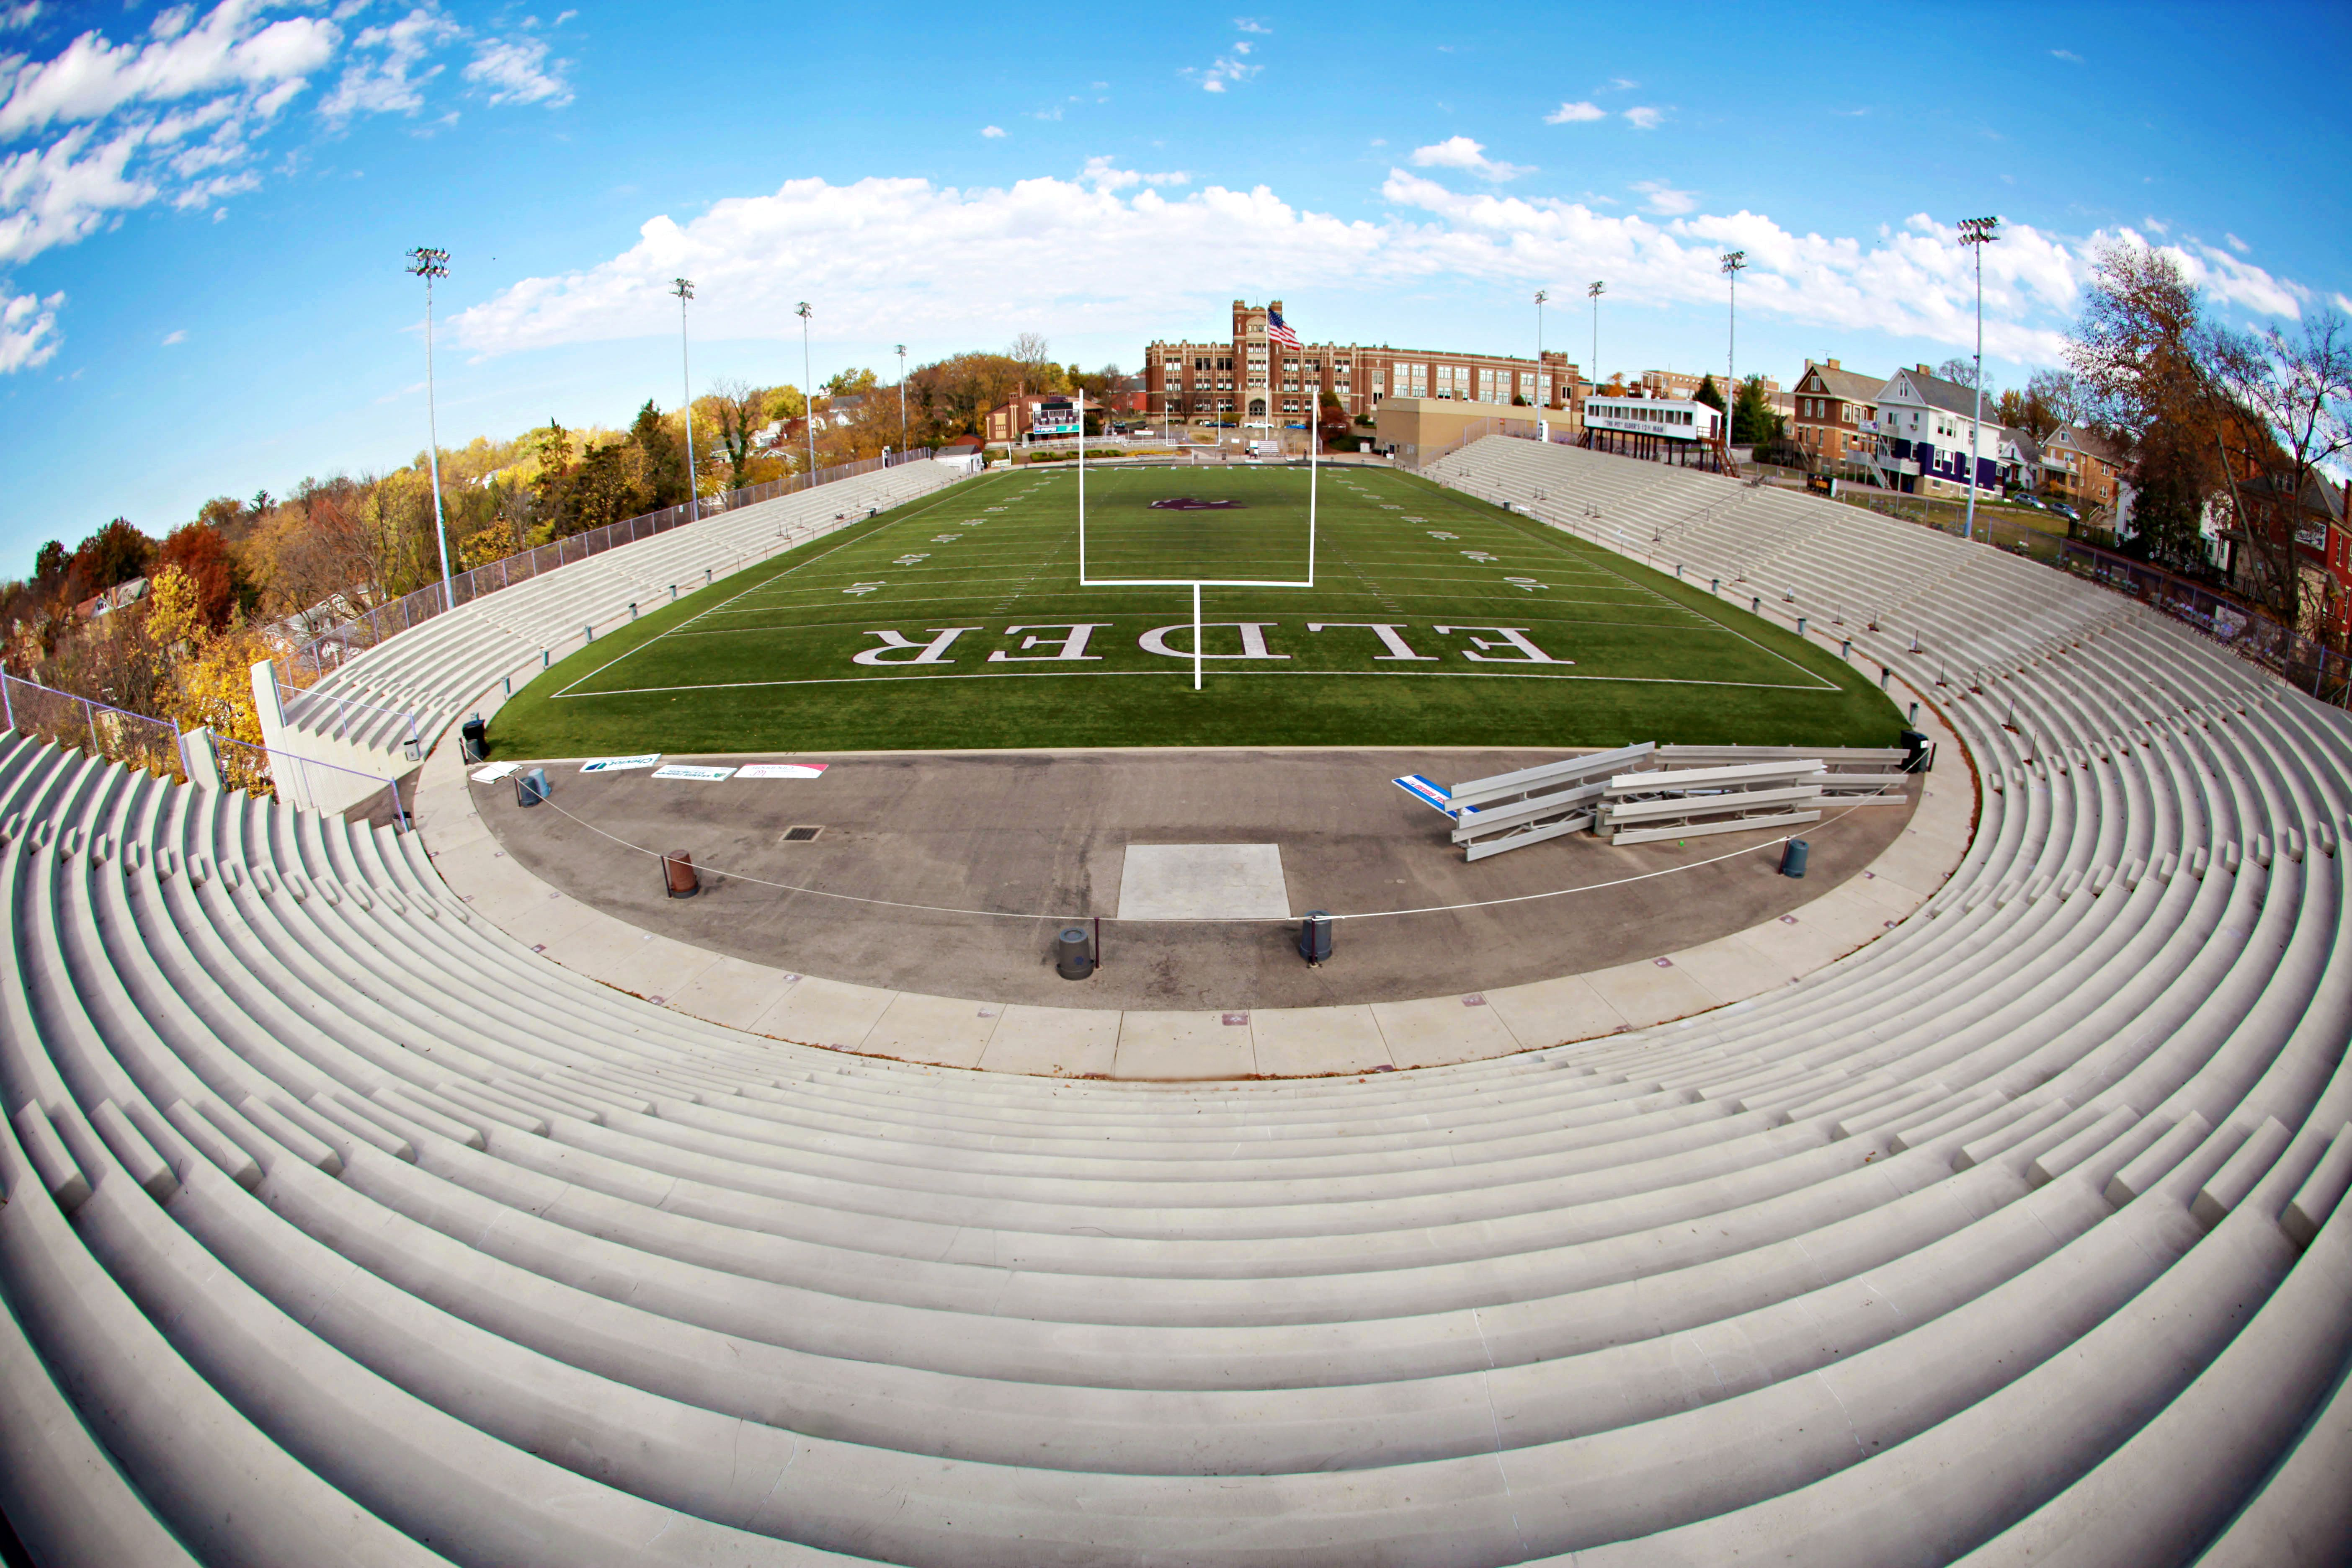 Fisheye view of The Pit High school football games, High